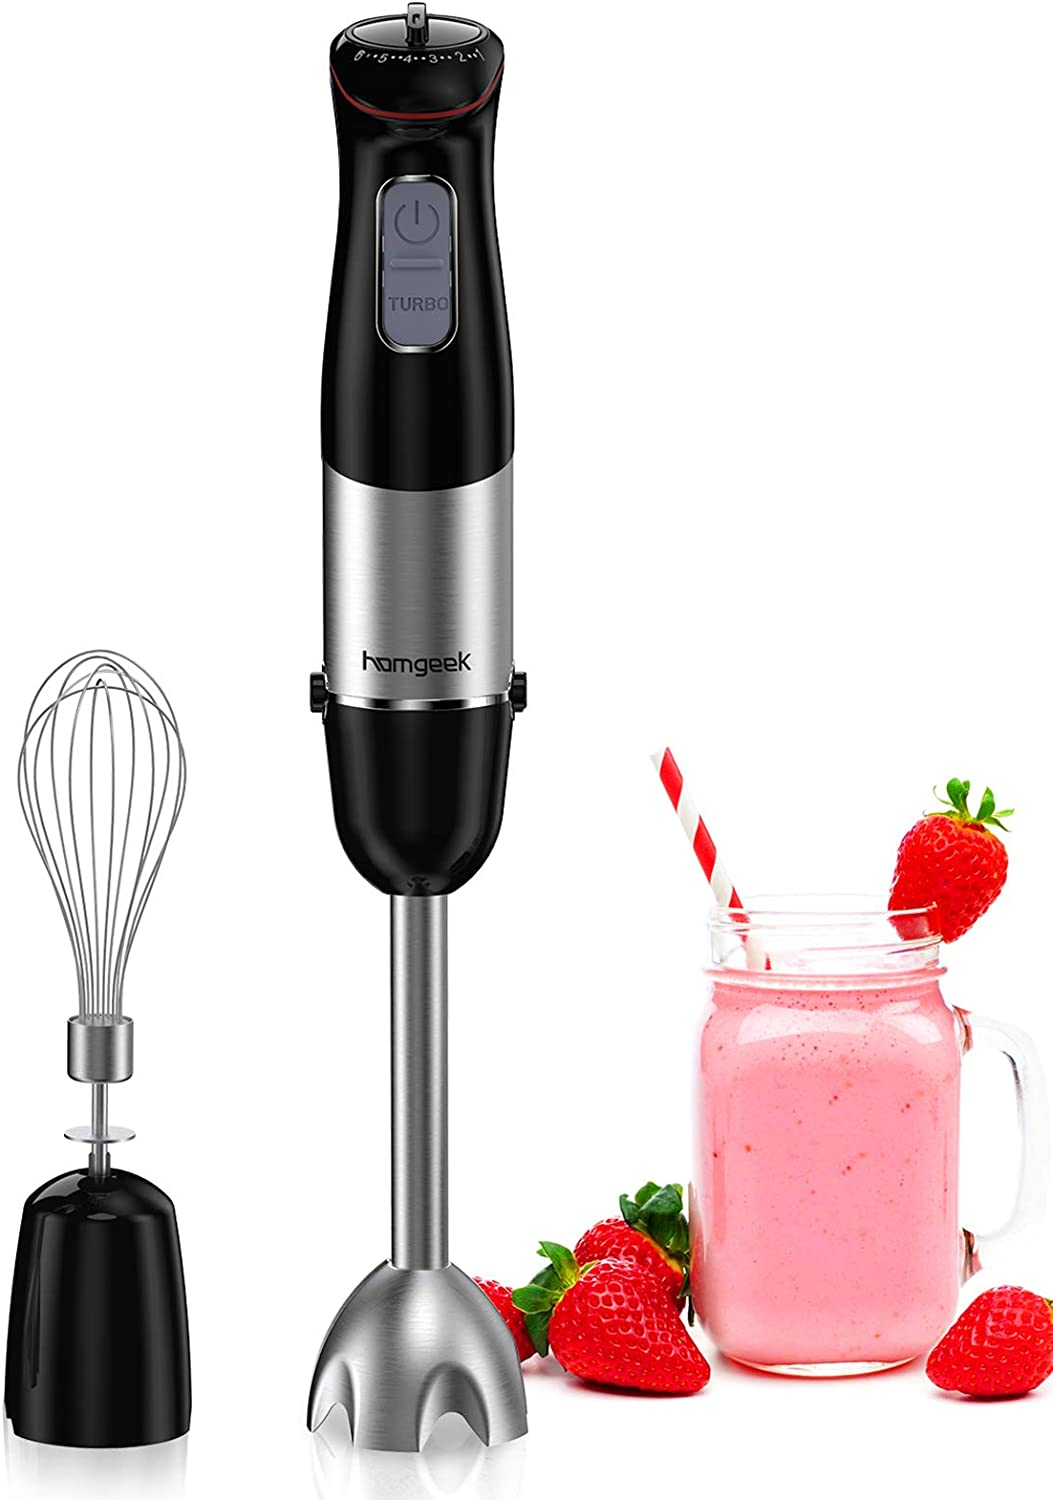 homgeek Immersion Hand Blender, 500W 6-Speed Stainless Steel Stick Blender with Egg Beater, for Soups, Sauces, Smoothies, Puree Infant Food, BPA-Free, Black